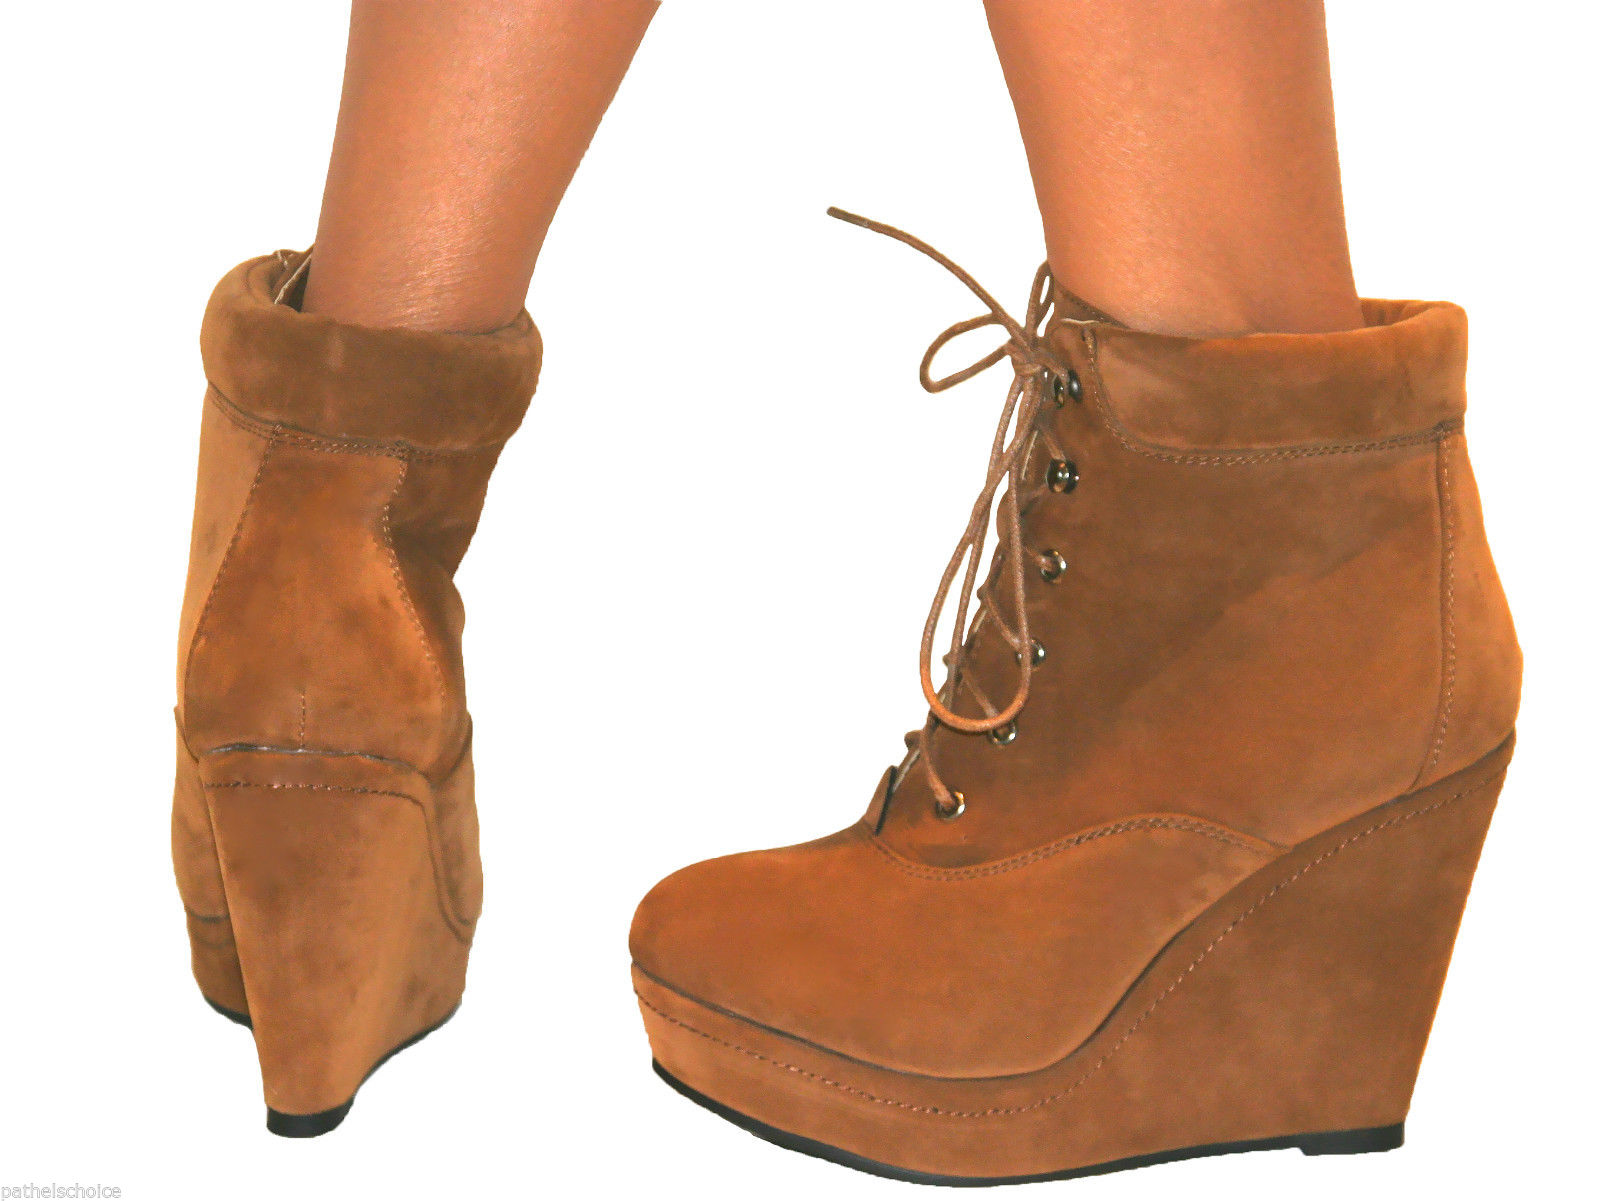 womens suede wedge high heel platform lace up shoes ankle